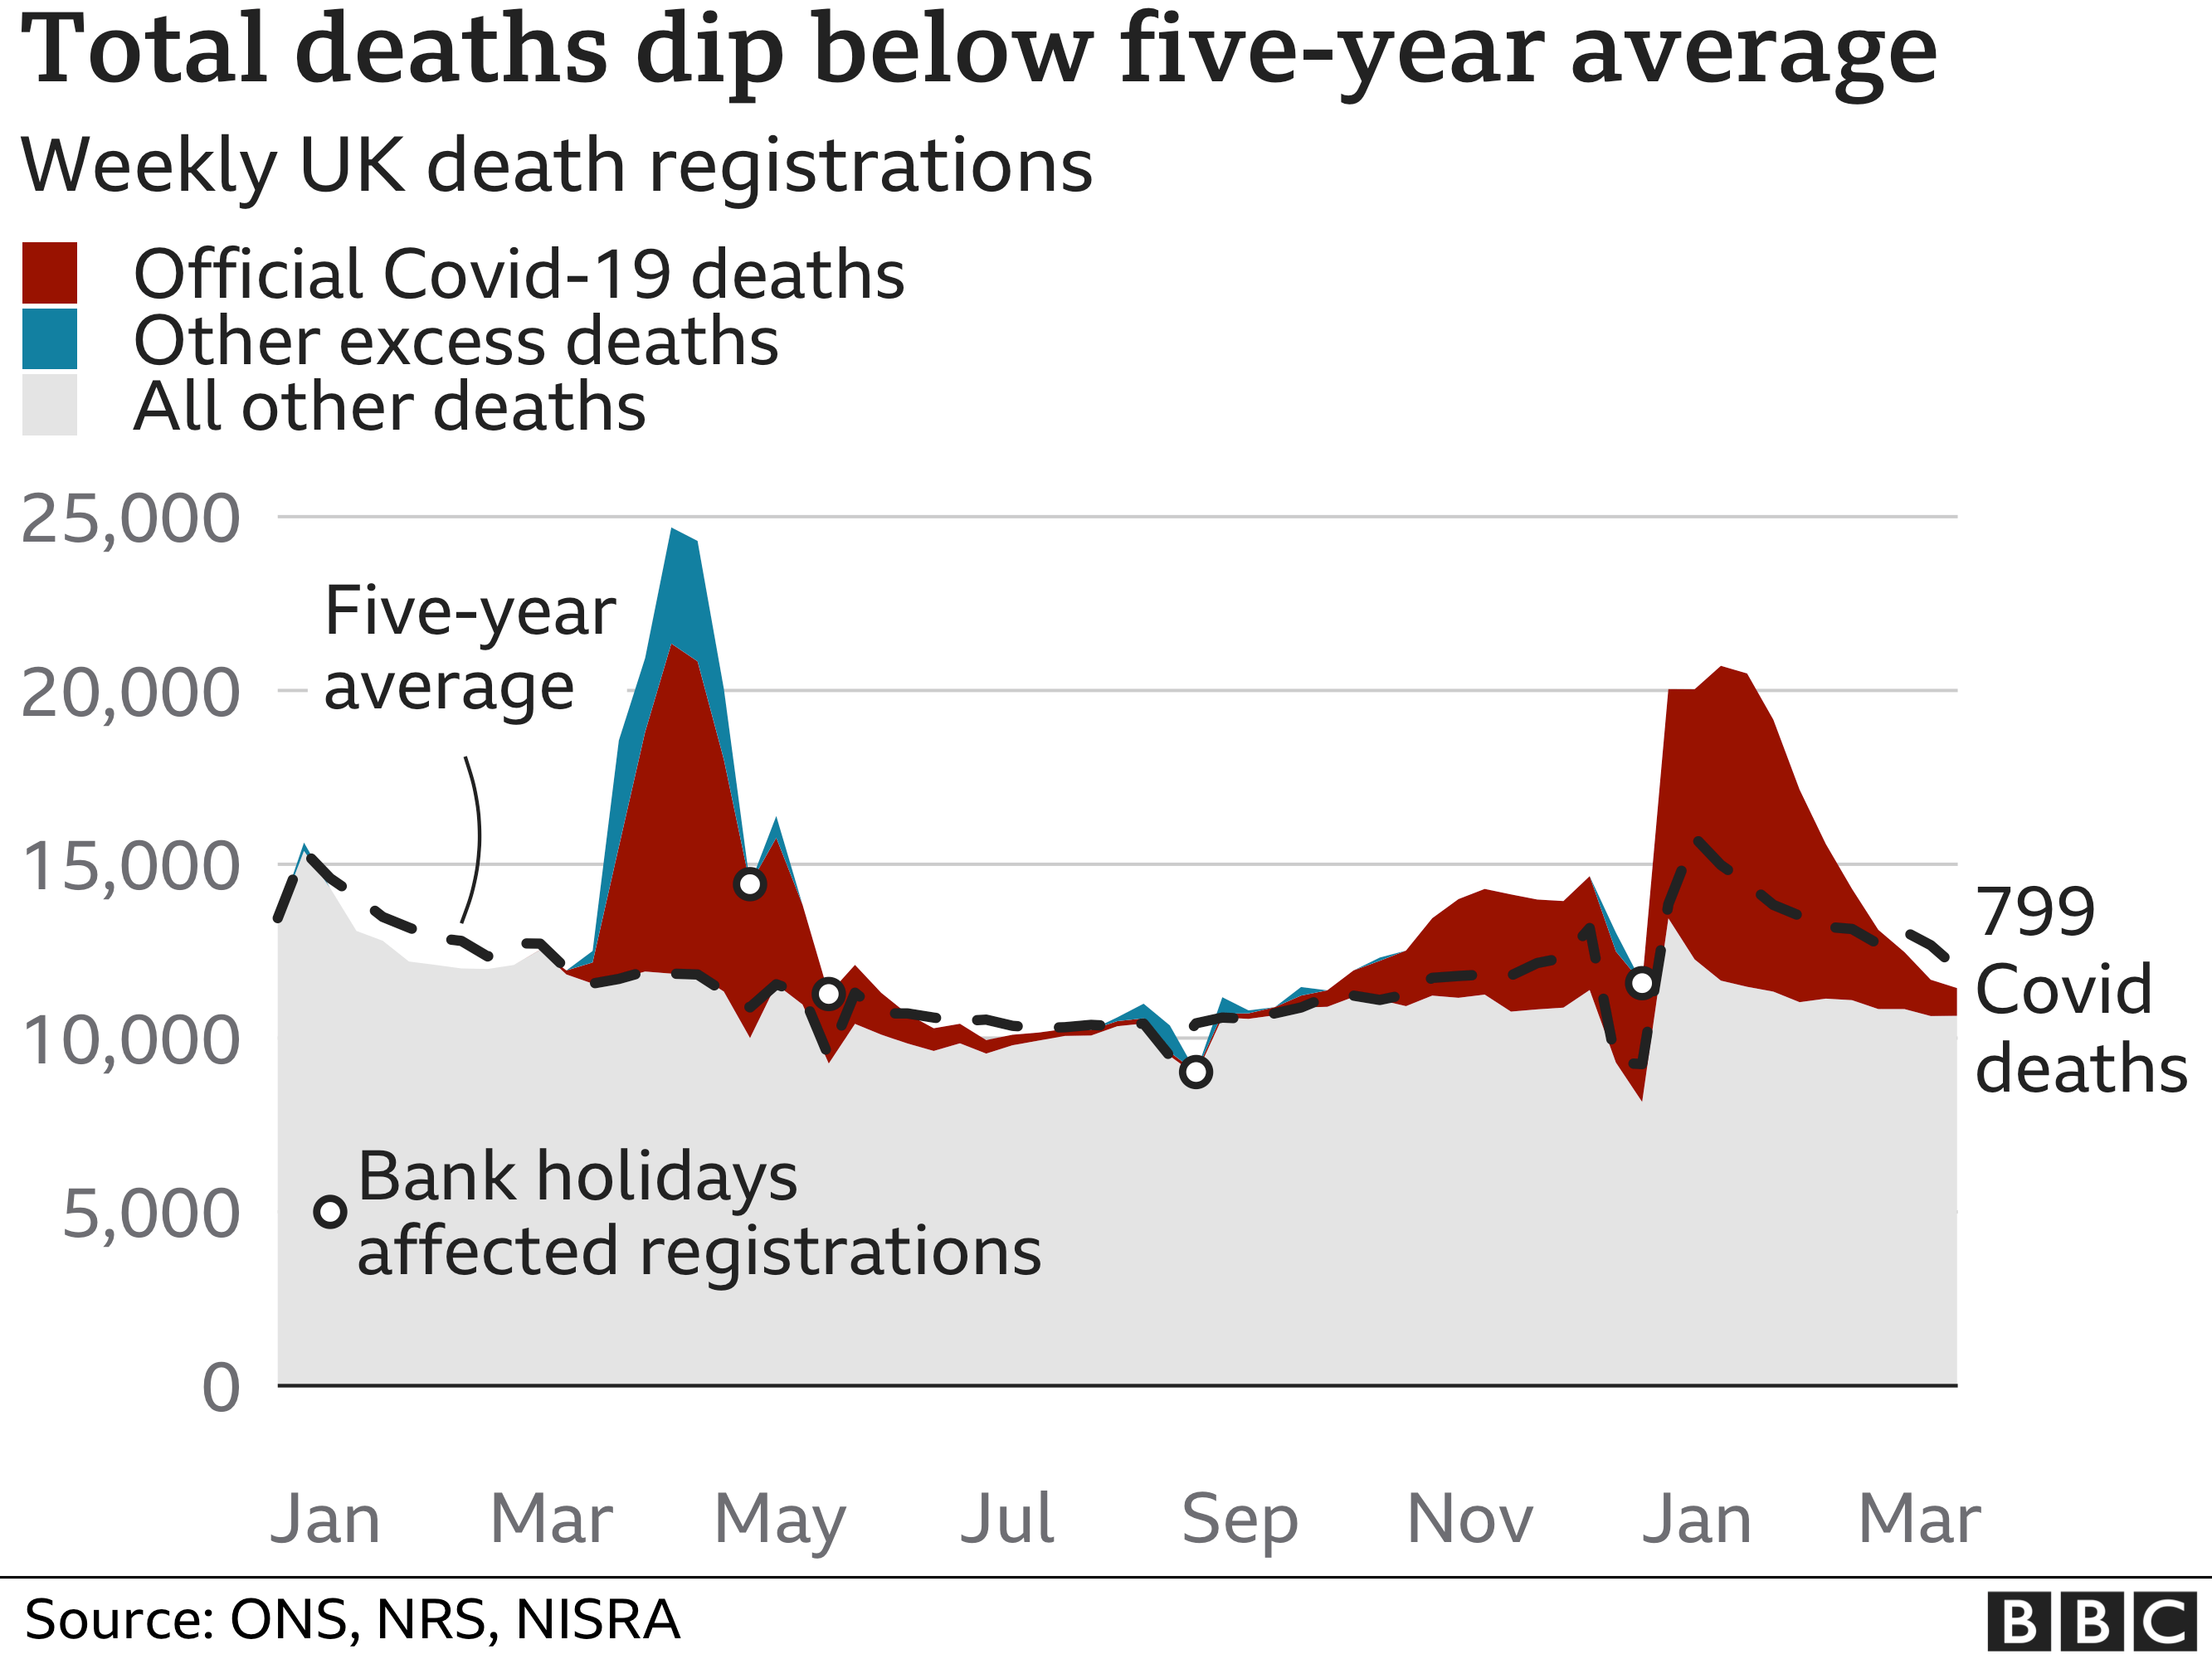 Chart shows excess deaths are below the five-year average